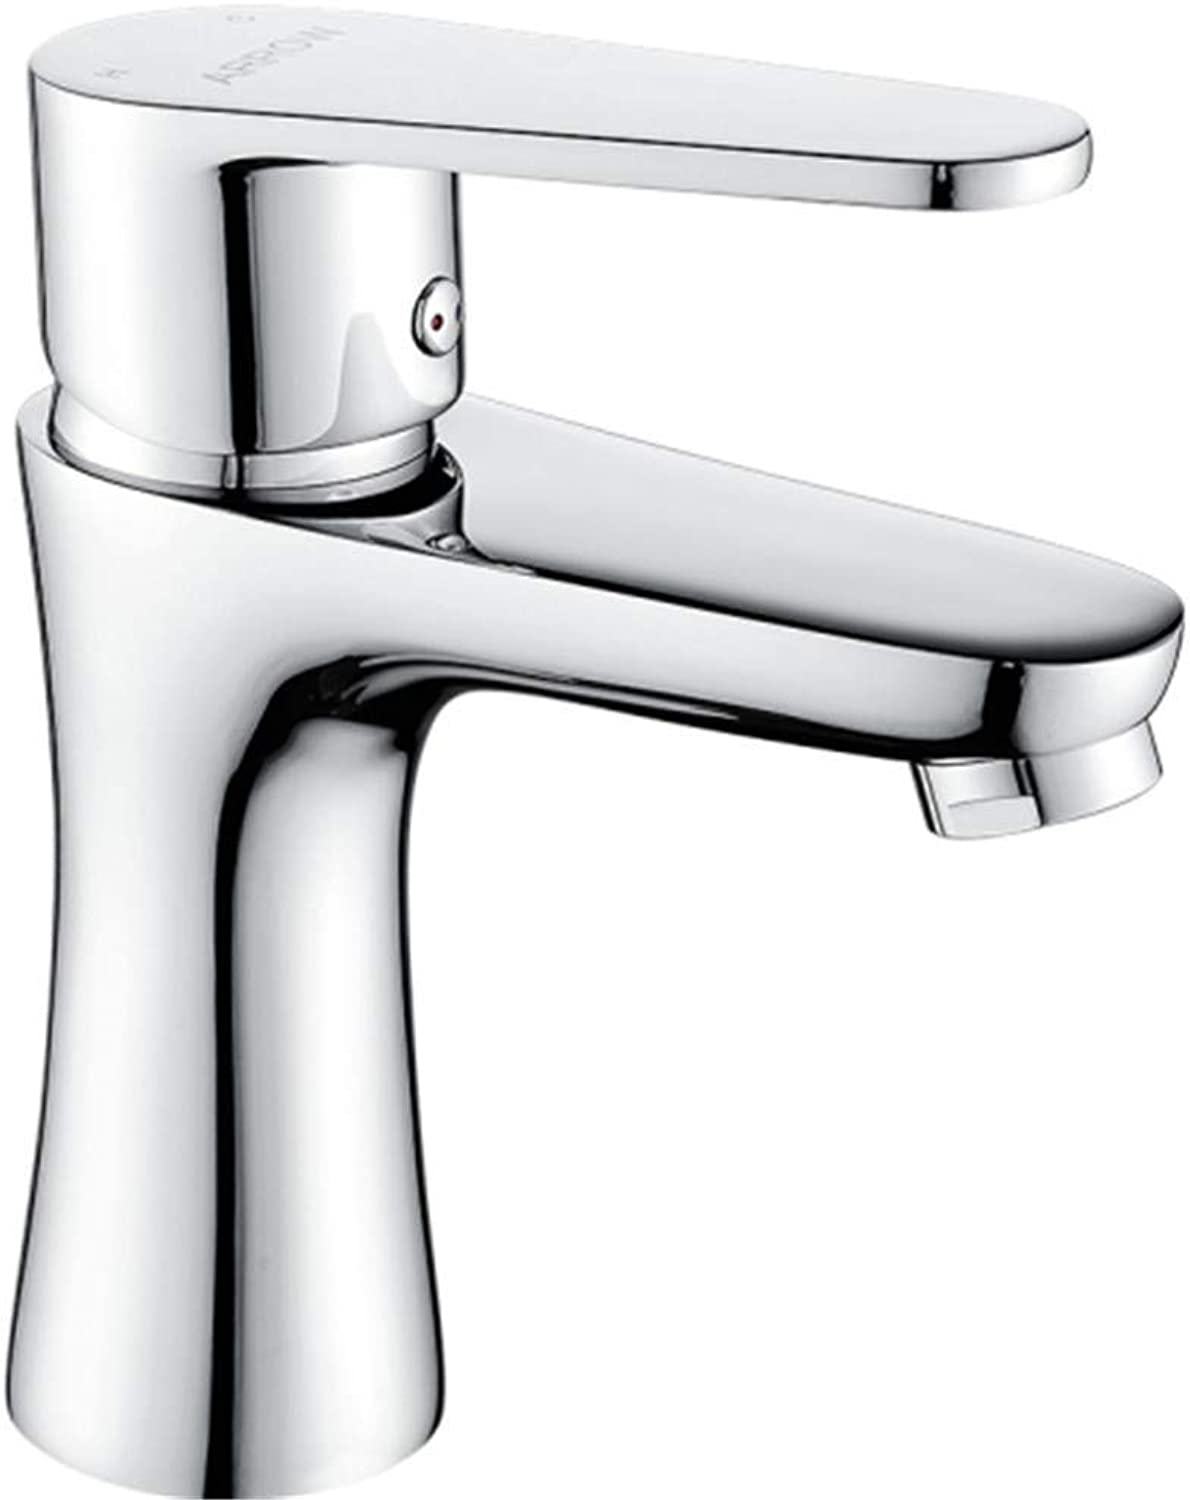 Water Tapdrinking Designer Archbathroom Cabinet Faucet, Bathroom Basin, Washbasin, Sitting Cold and Hot Water Faucet